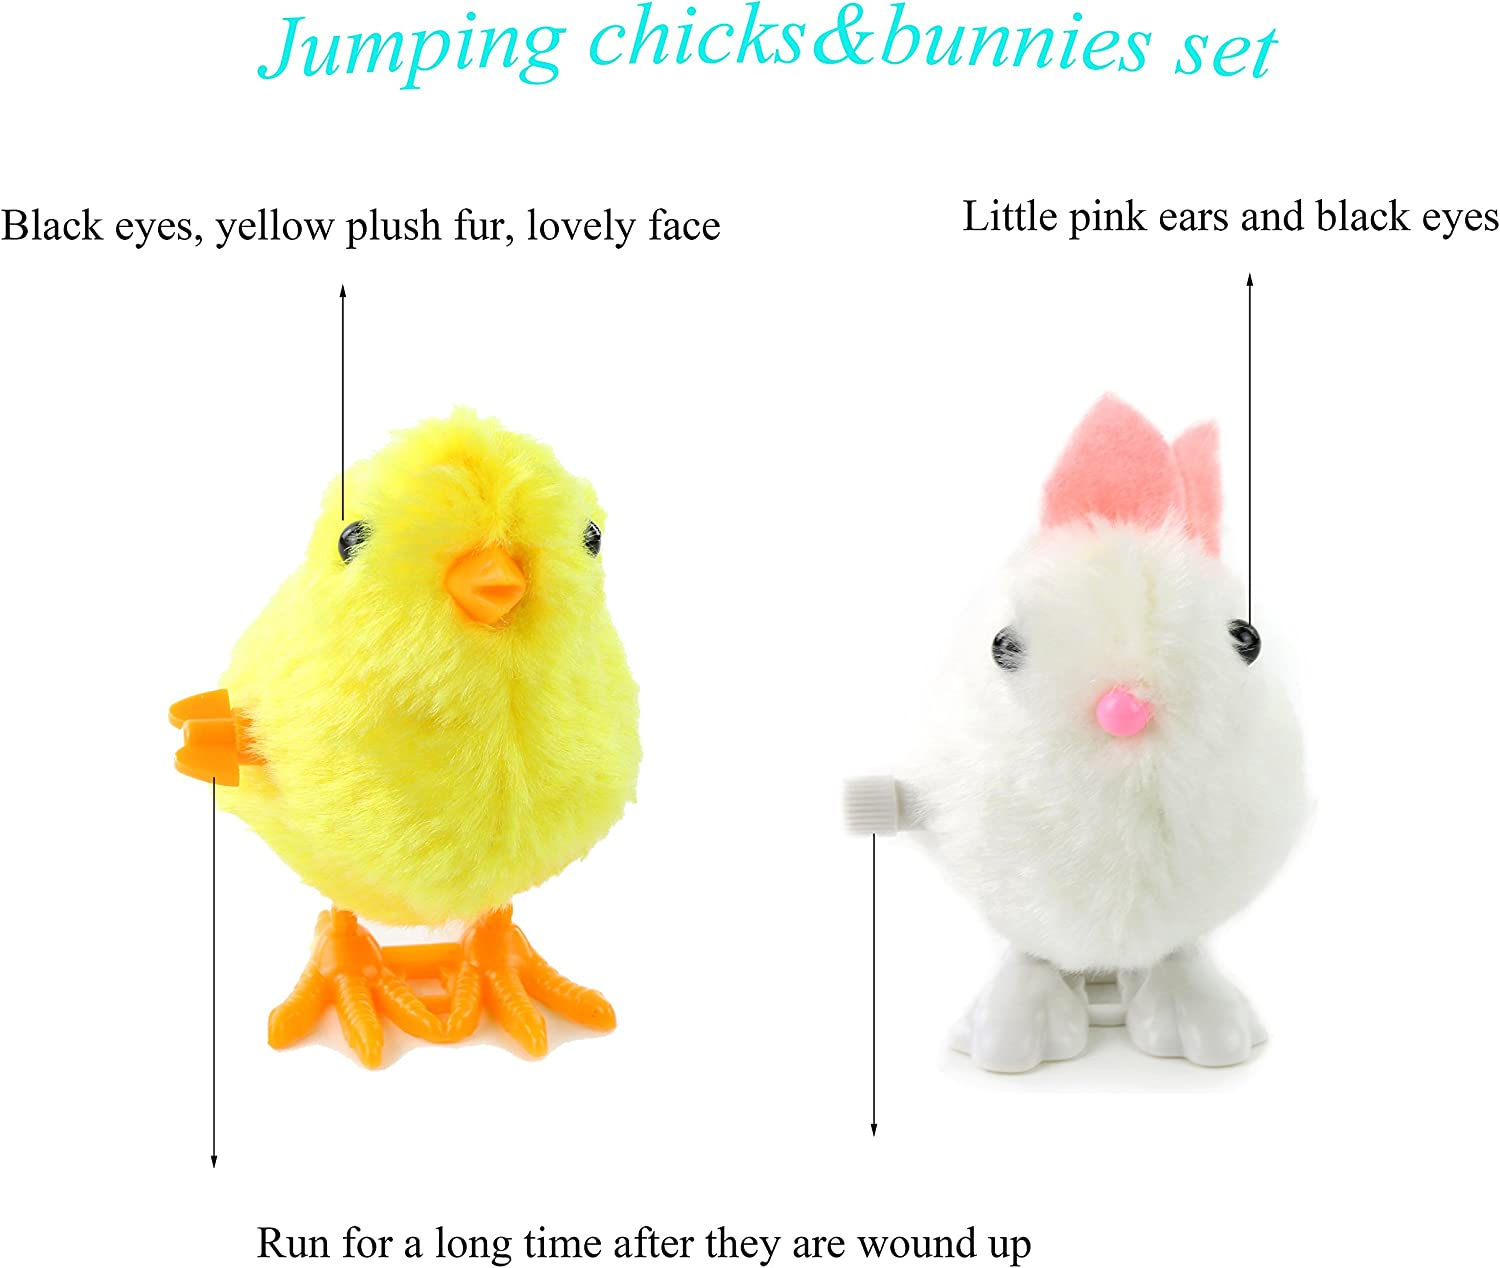 Fun Easter Toys - Easter Chick and Bunny